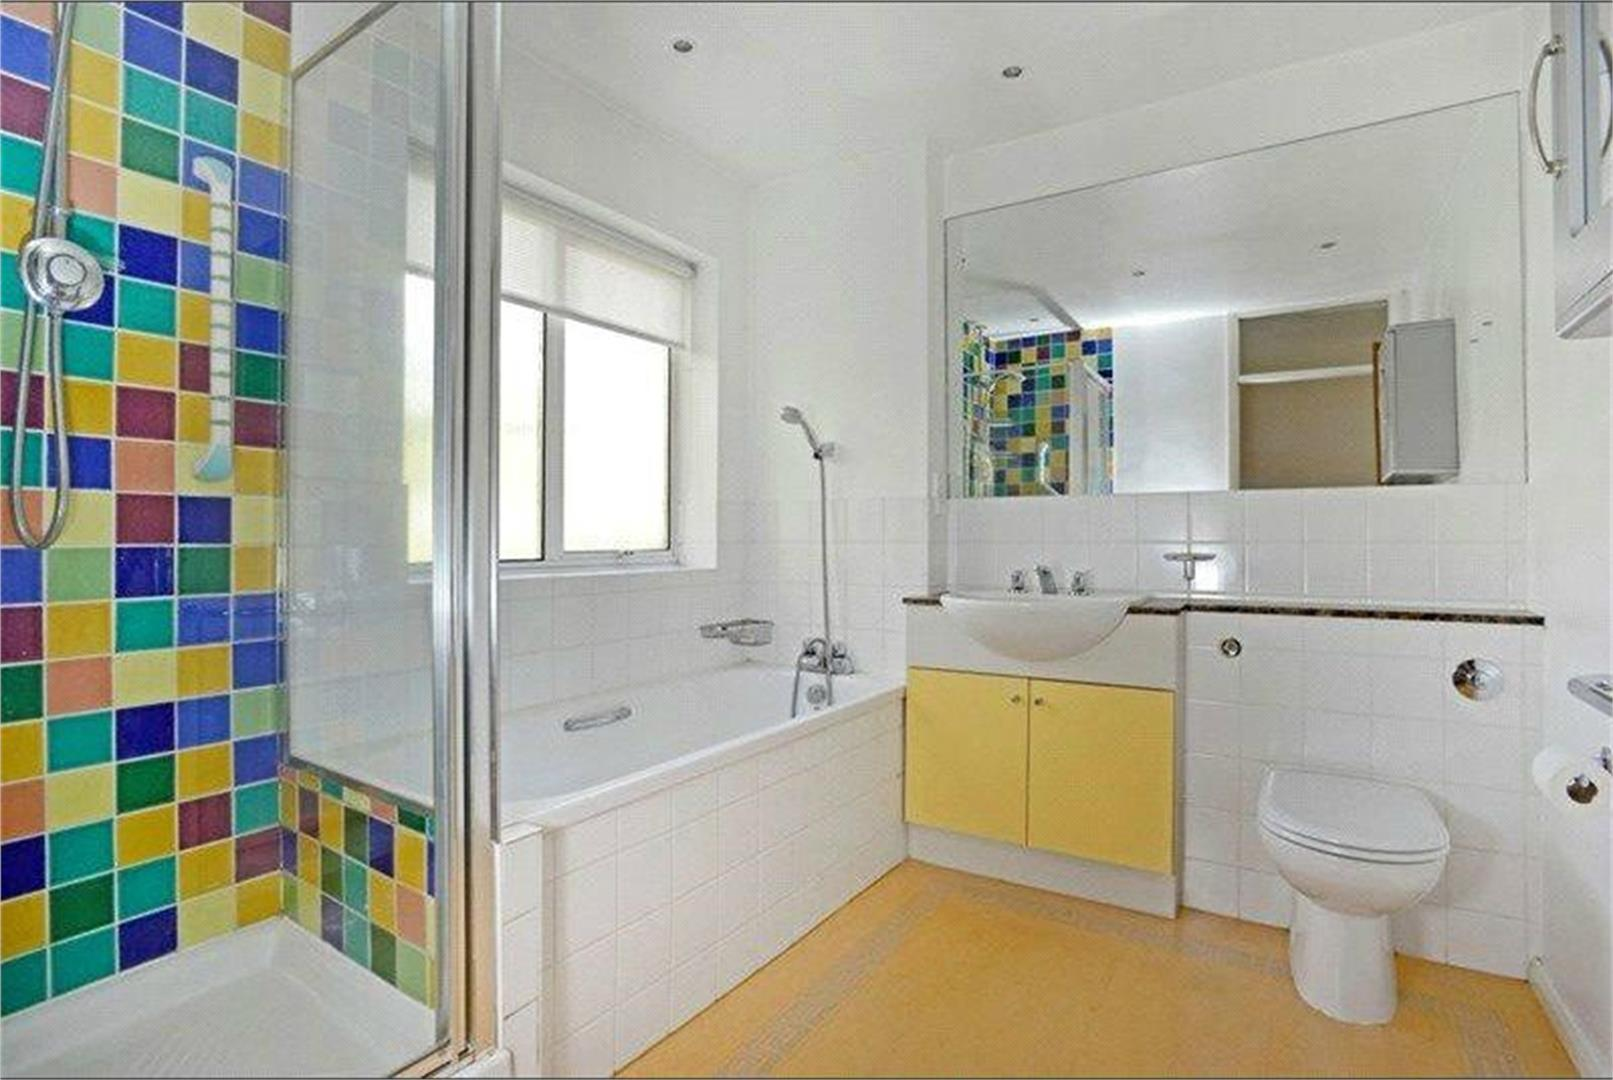 4 bed to rent - (Property Image 5)